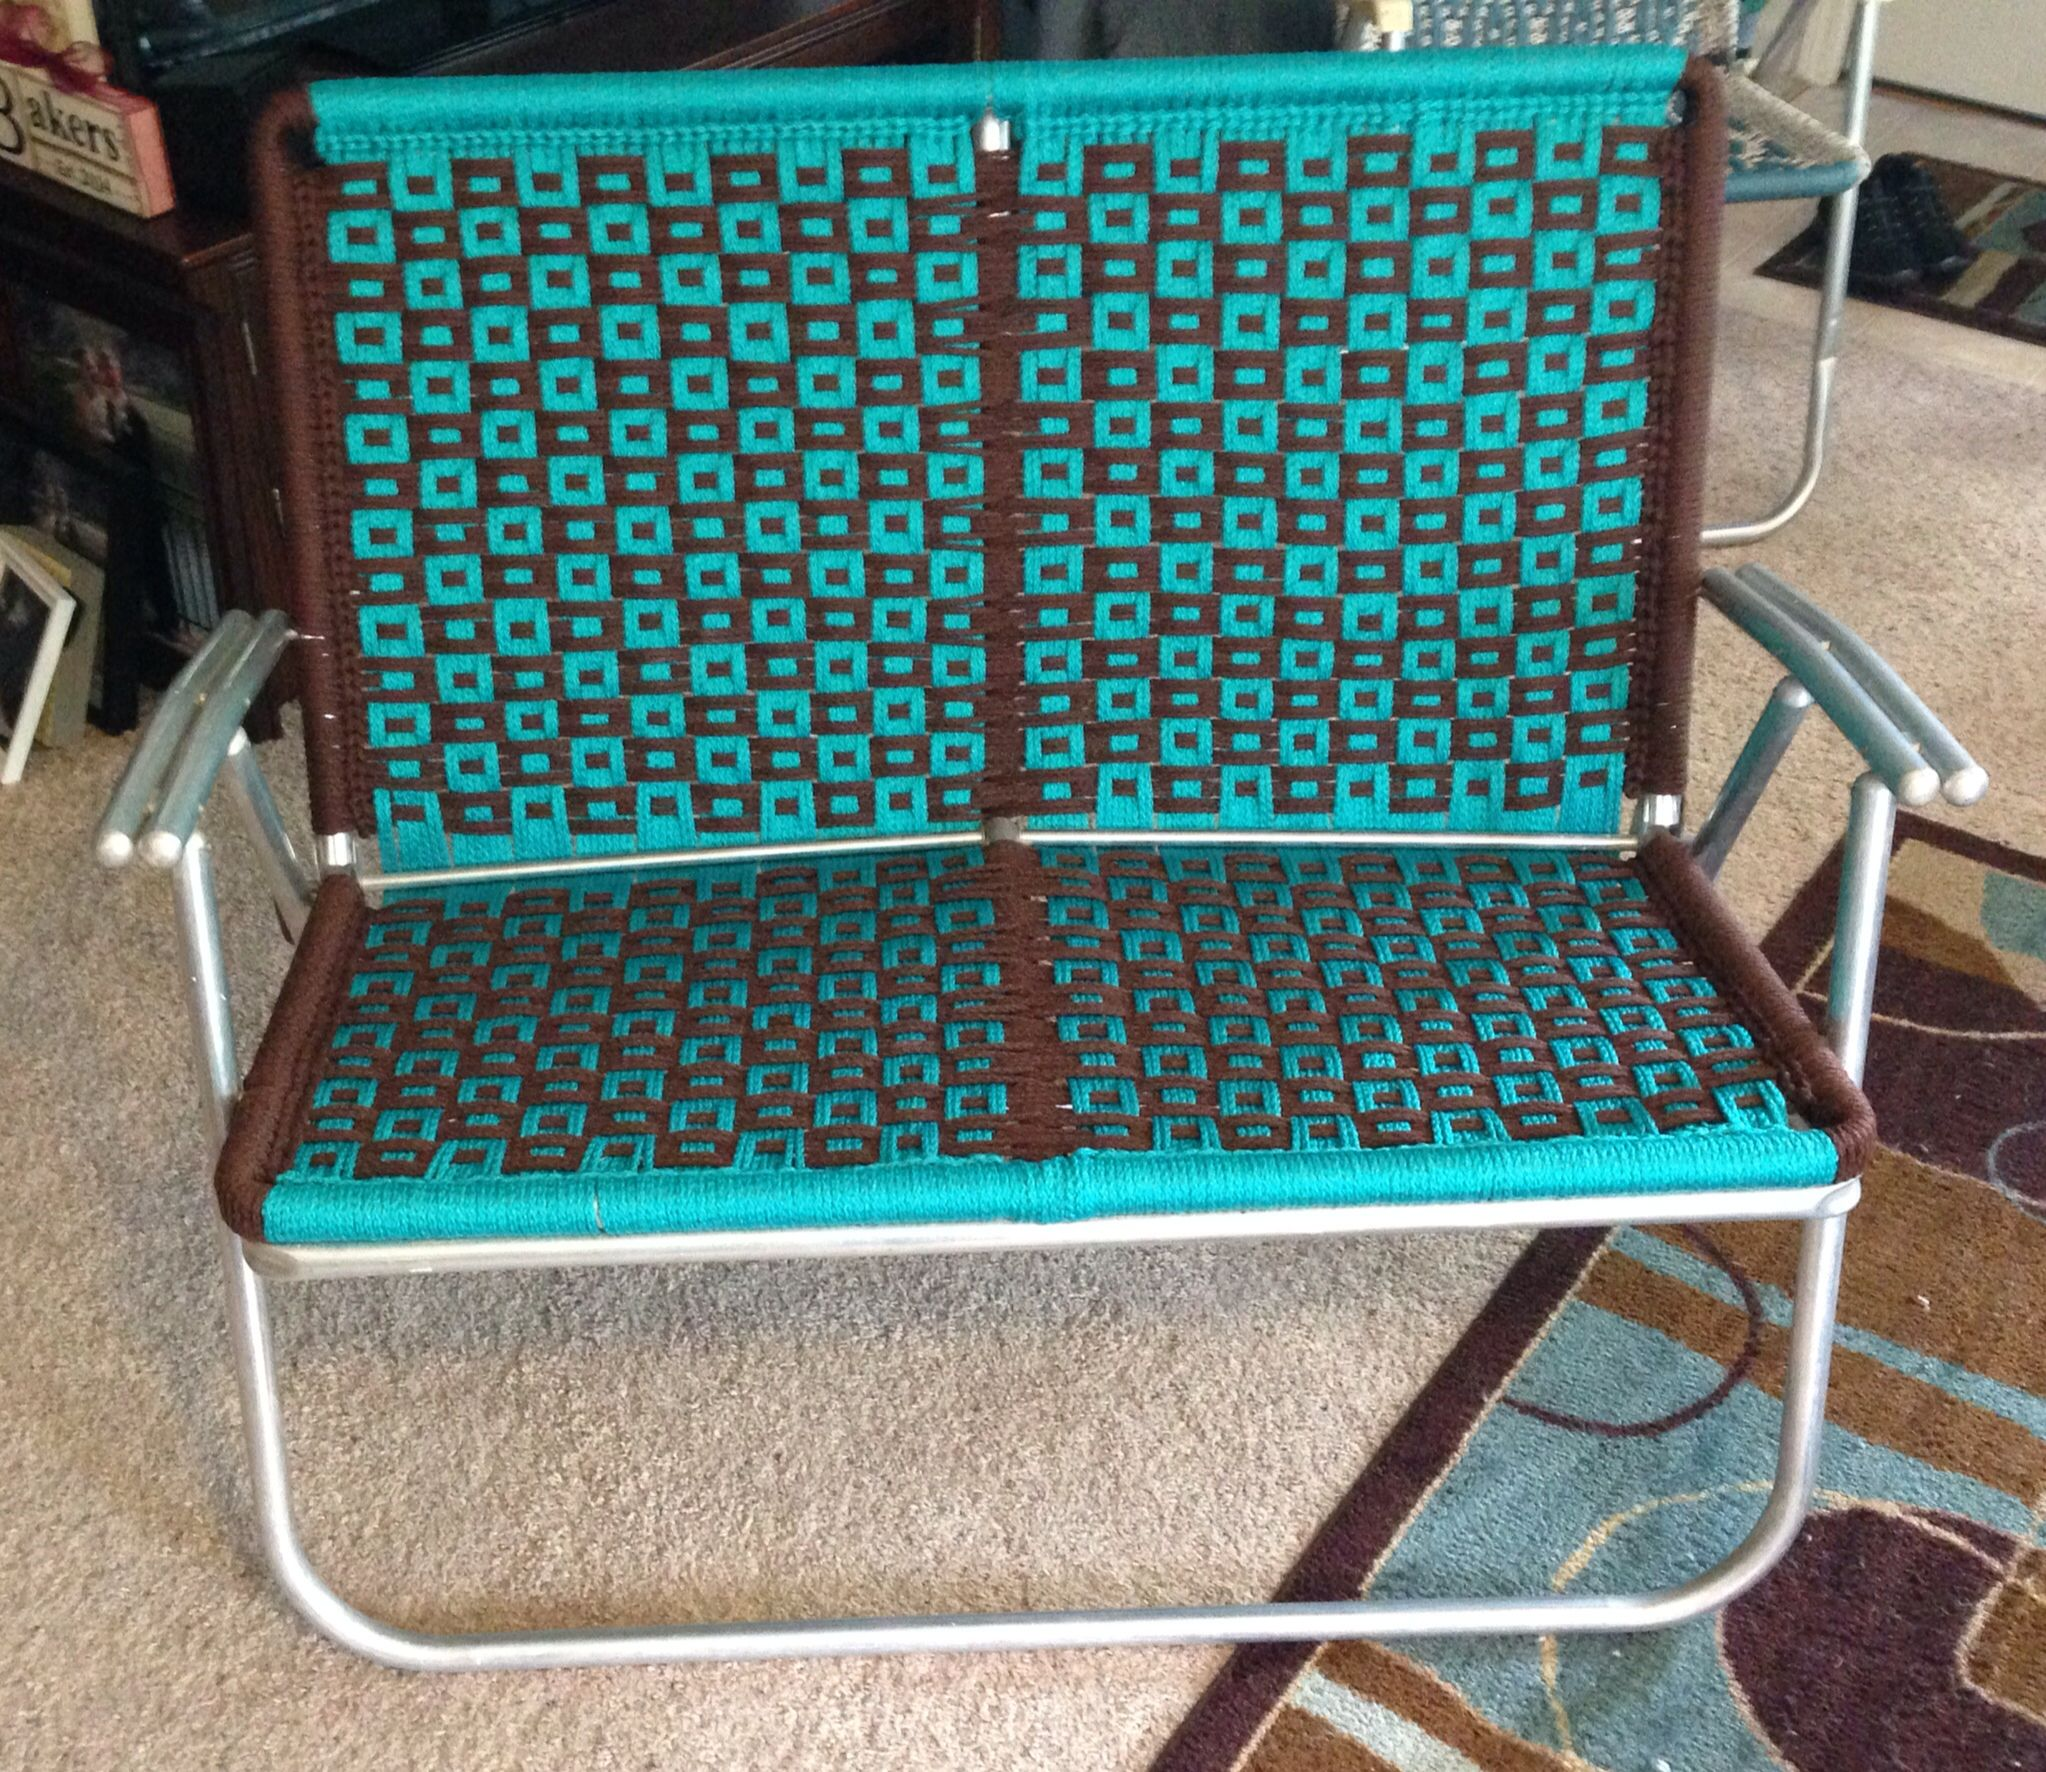 Woven Lawn Chair Macrame Loveseat Lawn Chair Projects Completed Macrame